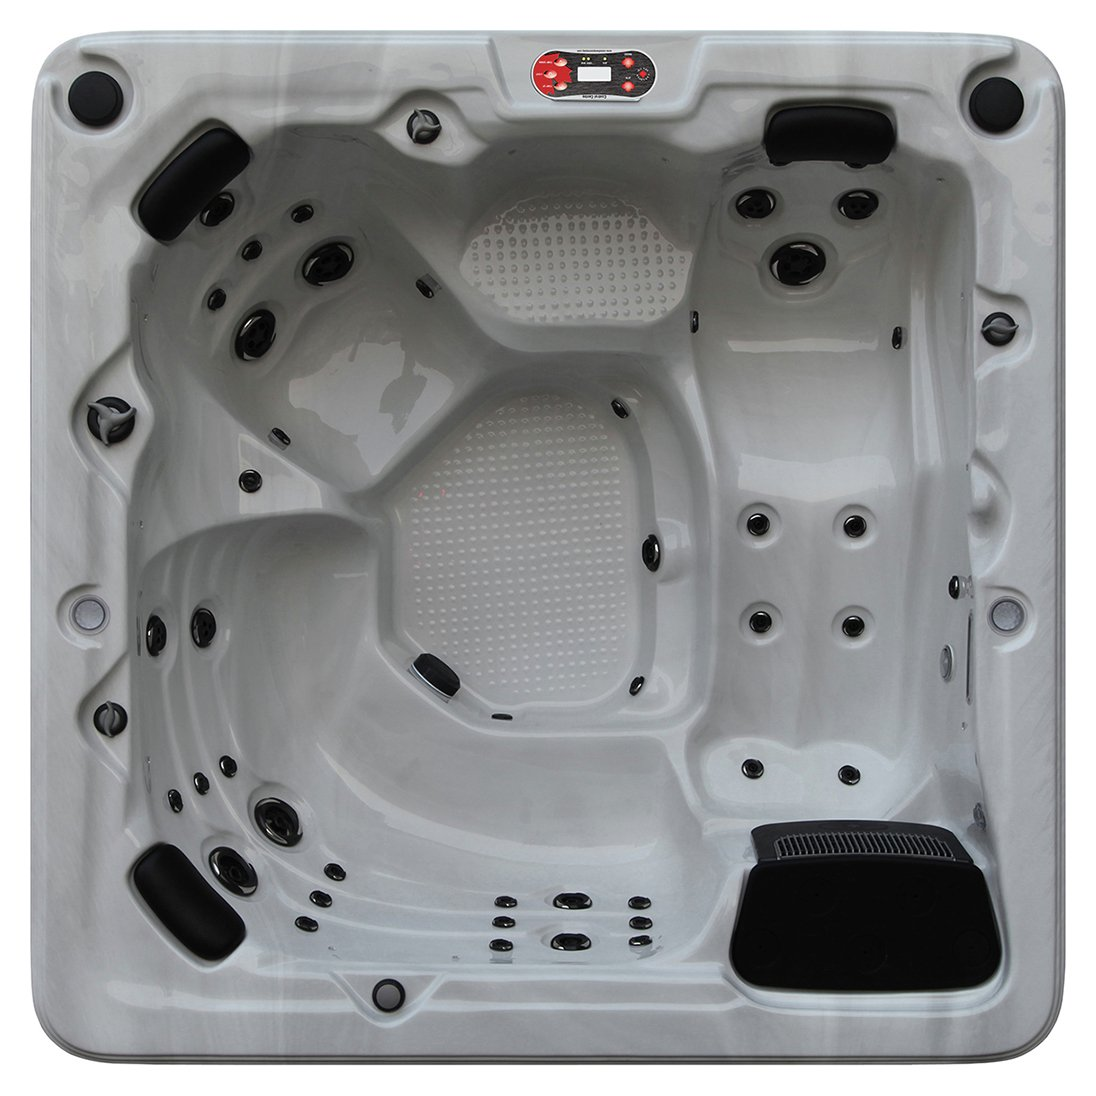 Canadian Spa Company Toronto 44 Jet 6 Person Hot Tub. lowest price